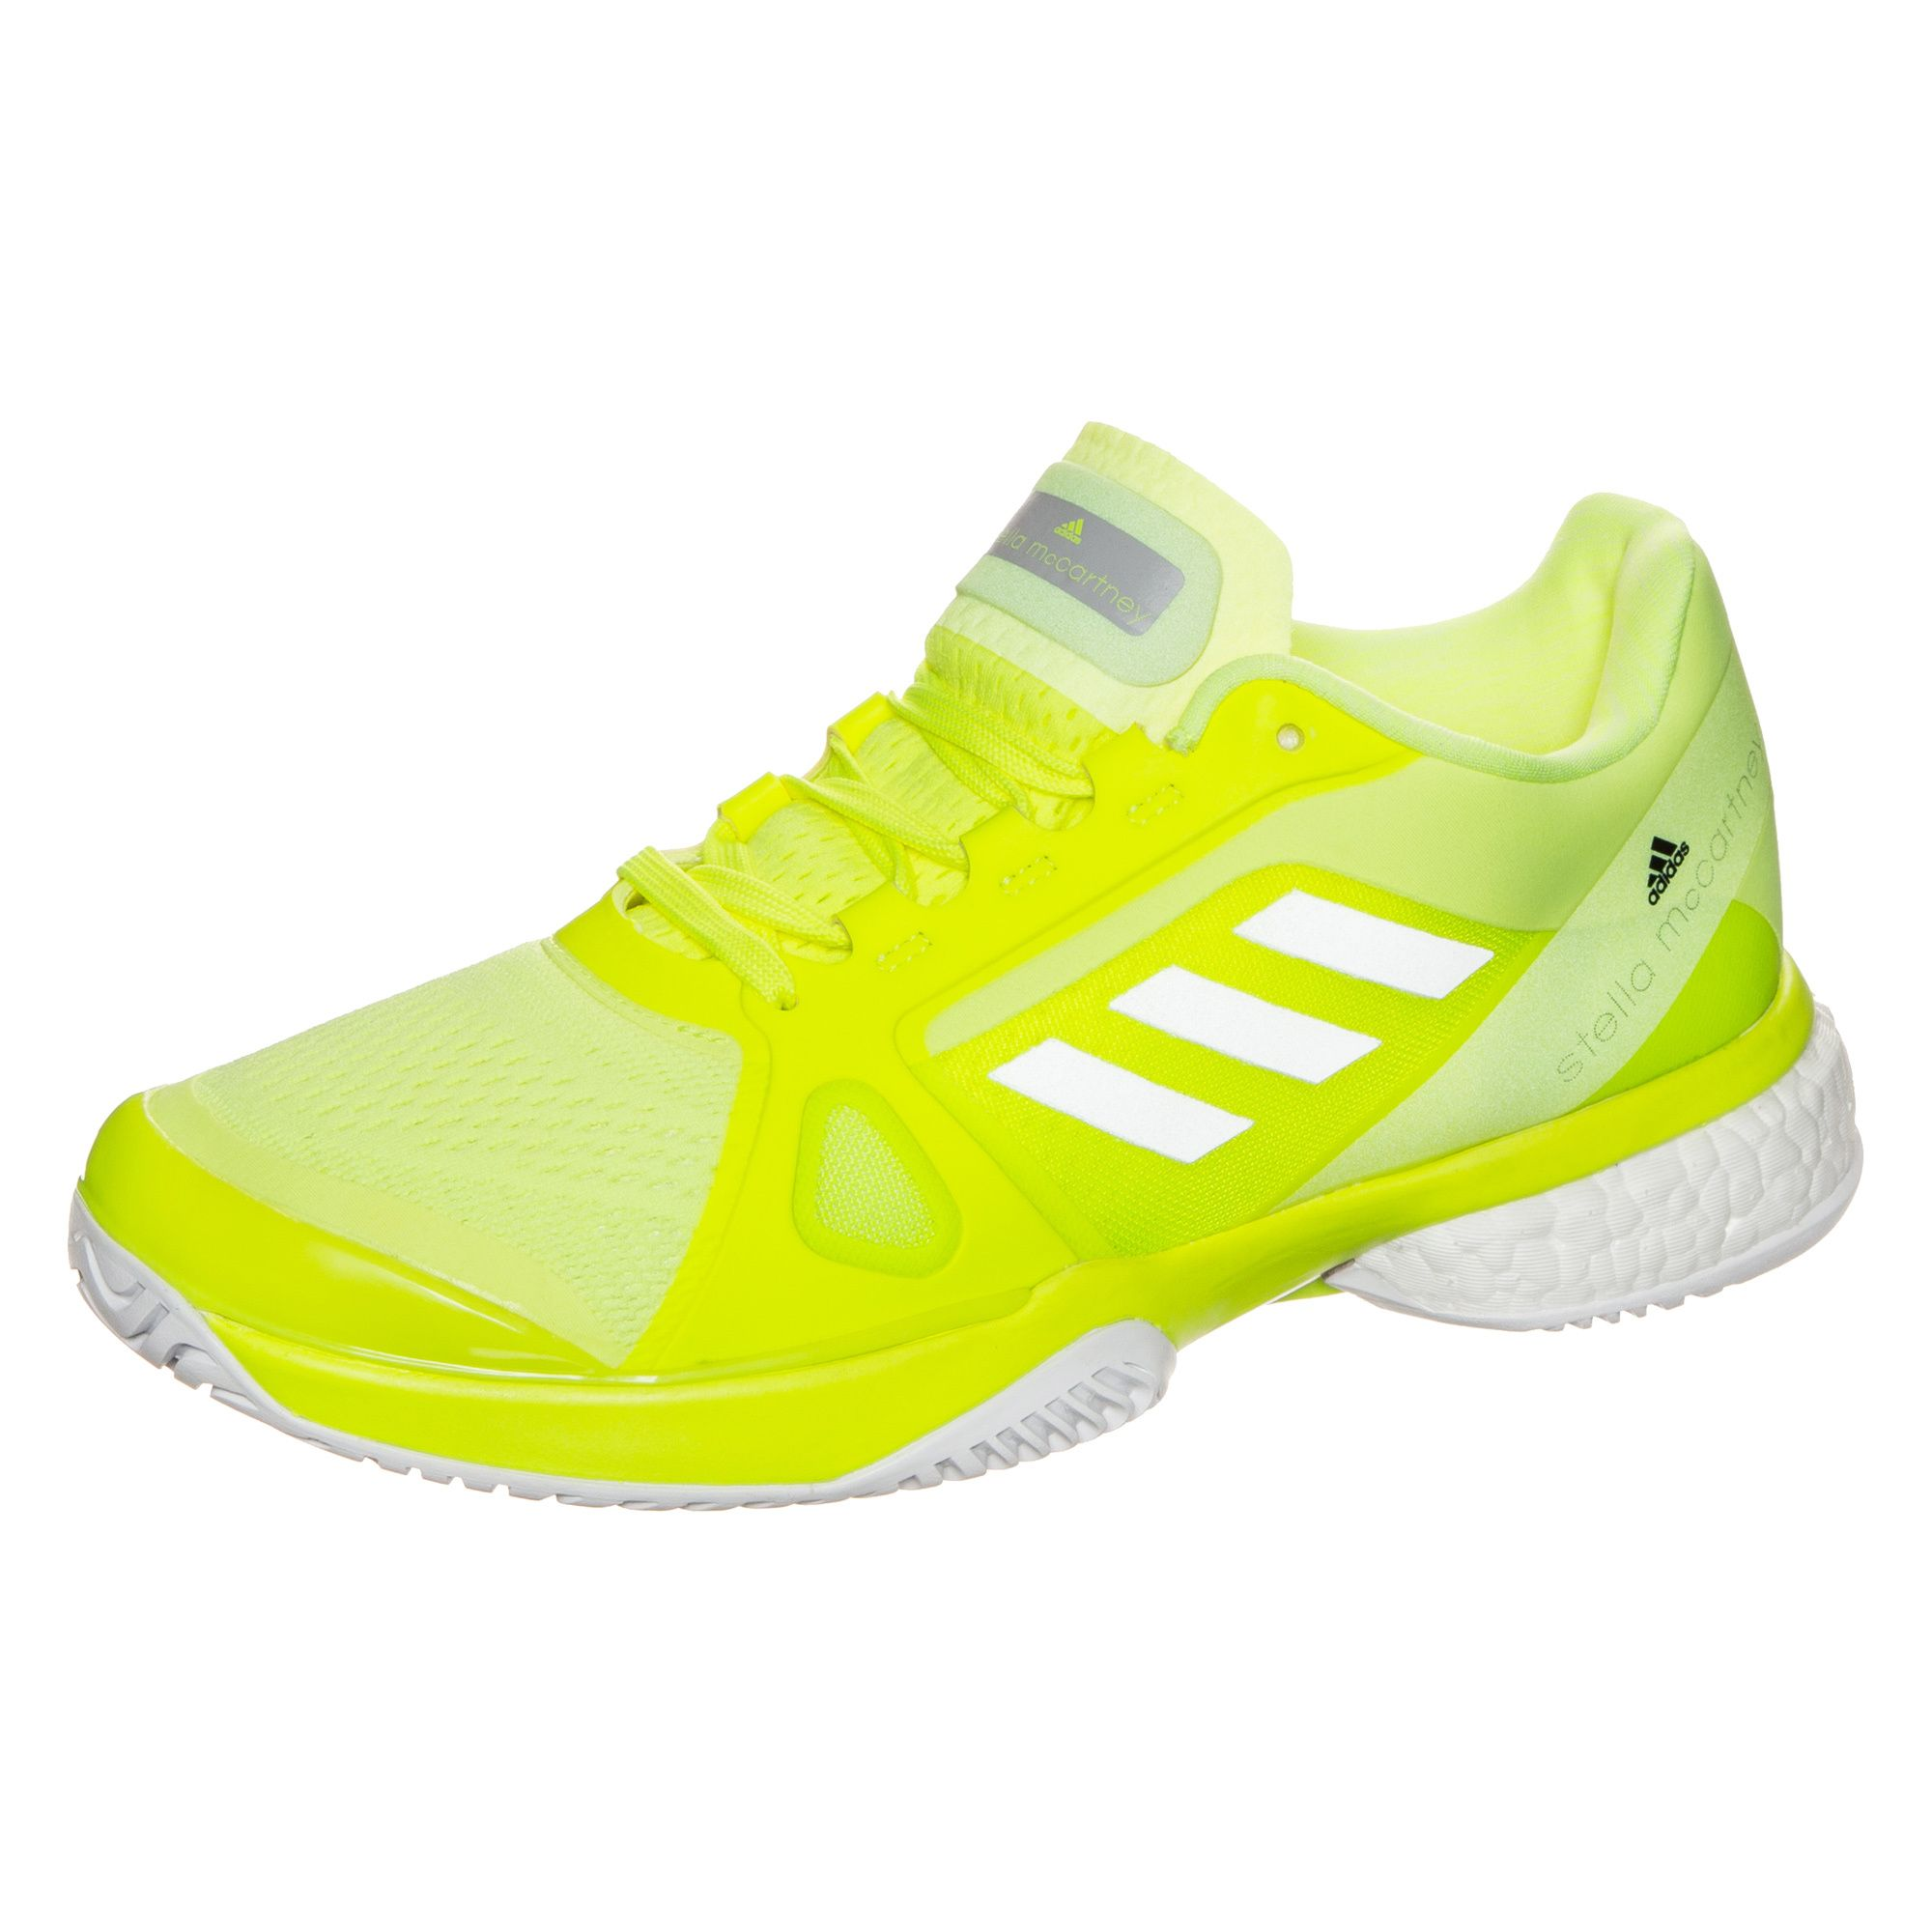 ADIDAS PERFORMANCE adidas Performance Stella McCartney Barricade Boost 2017 Tennisschuh Damen